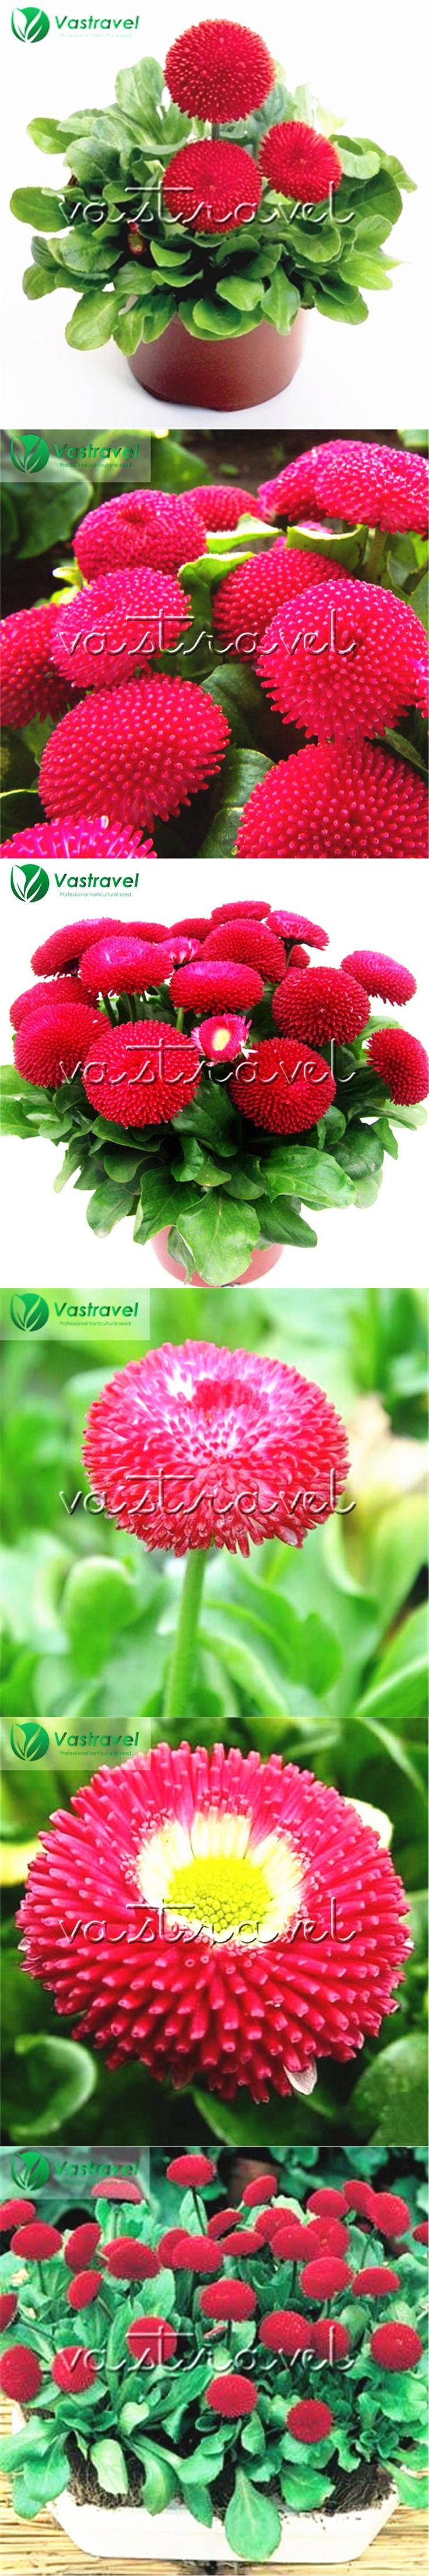 Red Bellis perennis English Daisy Flower 500 Seeds  / Bag  Lawn Daisy Easy to grow from seed Dwarf Bonsai Flower